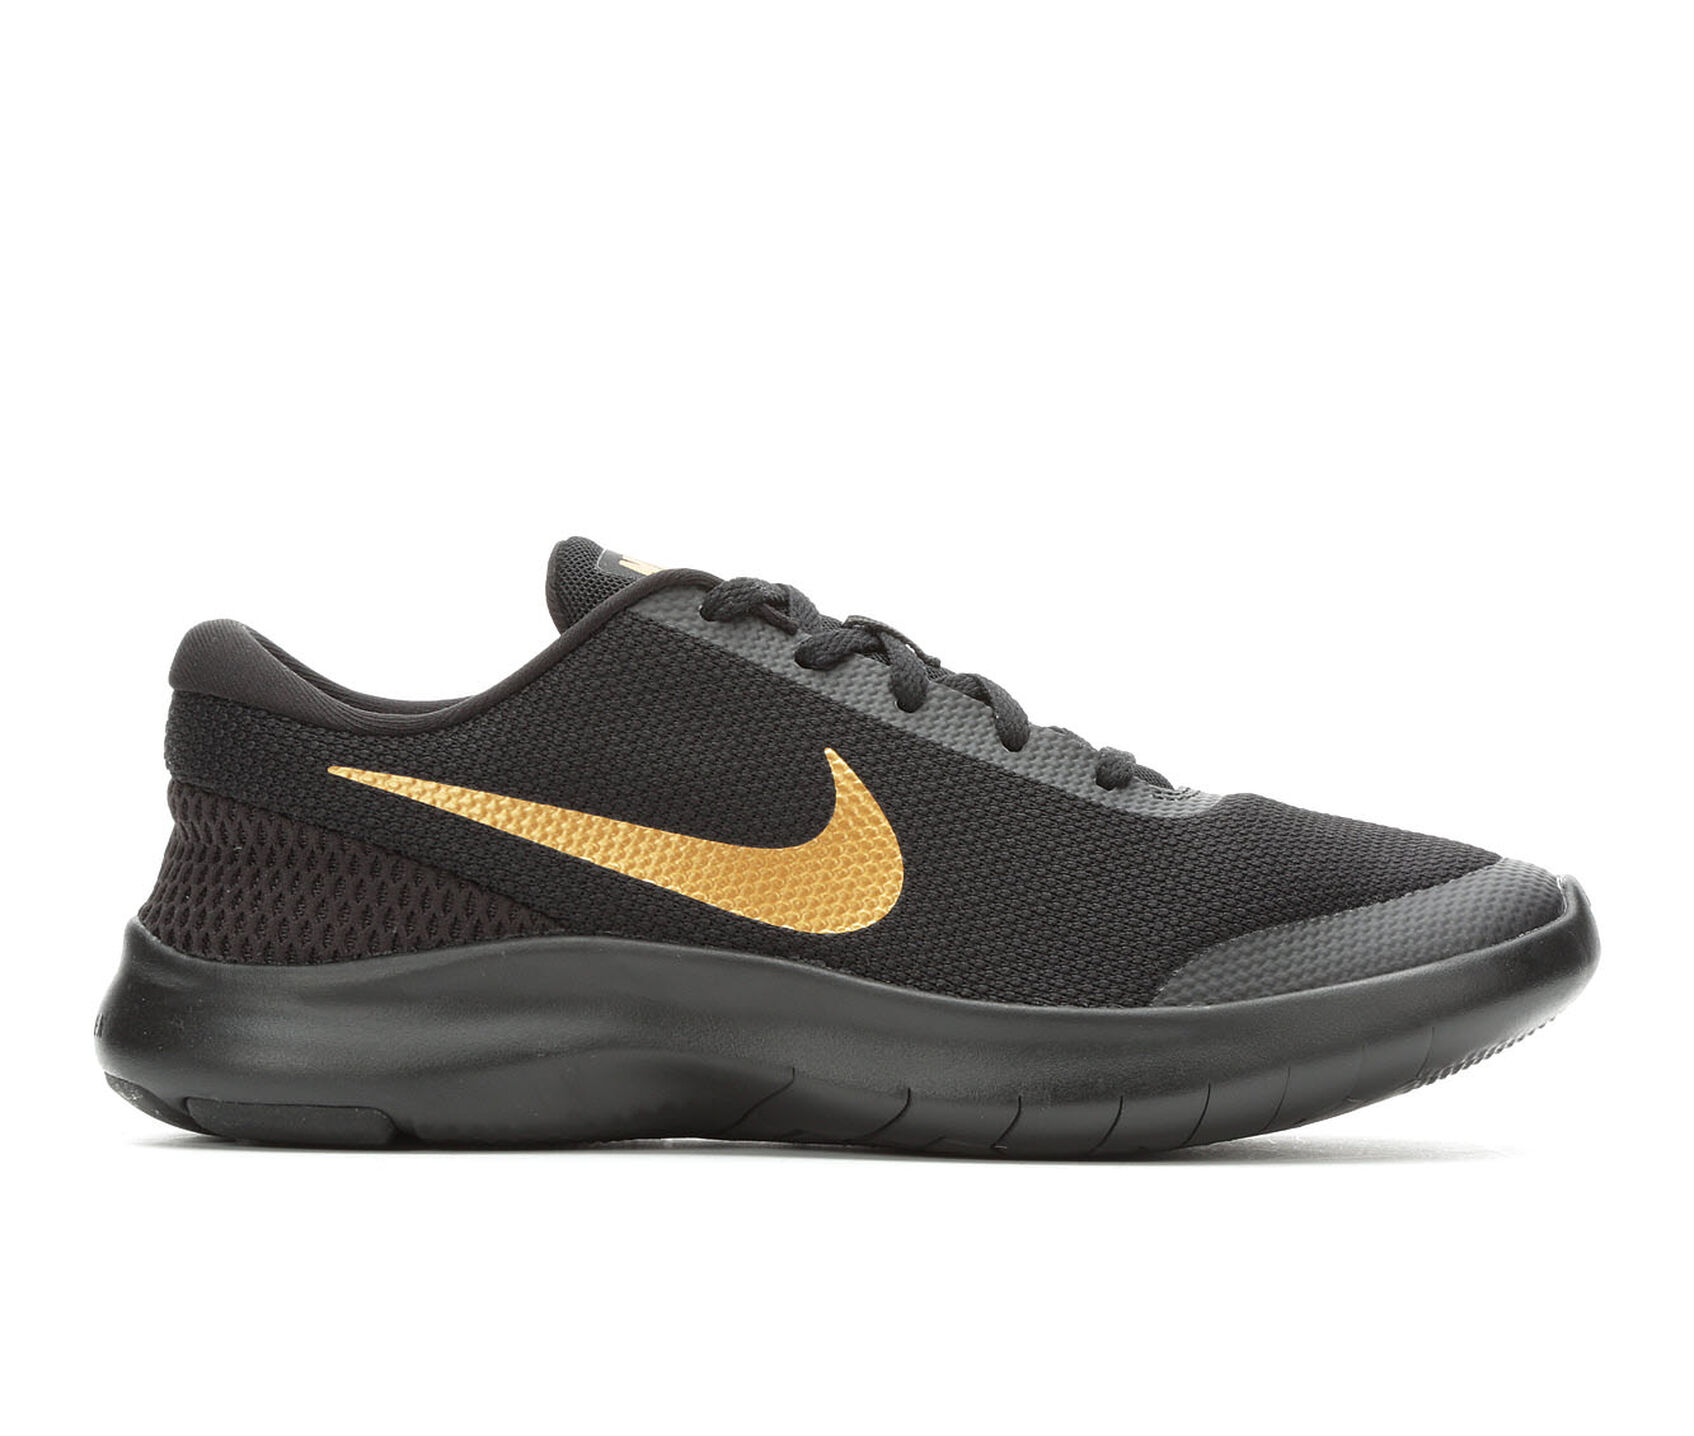 0d63dc3c862f5 Women's Nike Flex Experience Run 7 Running Shoes | Shoe Carnival